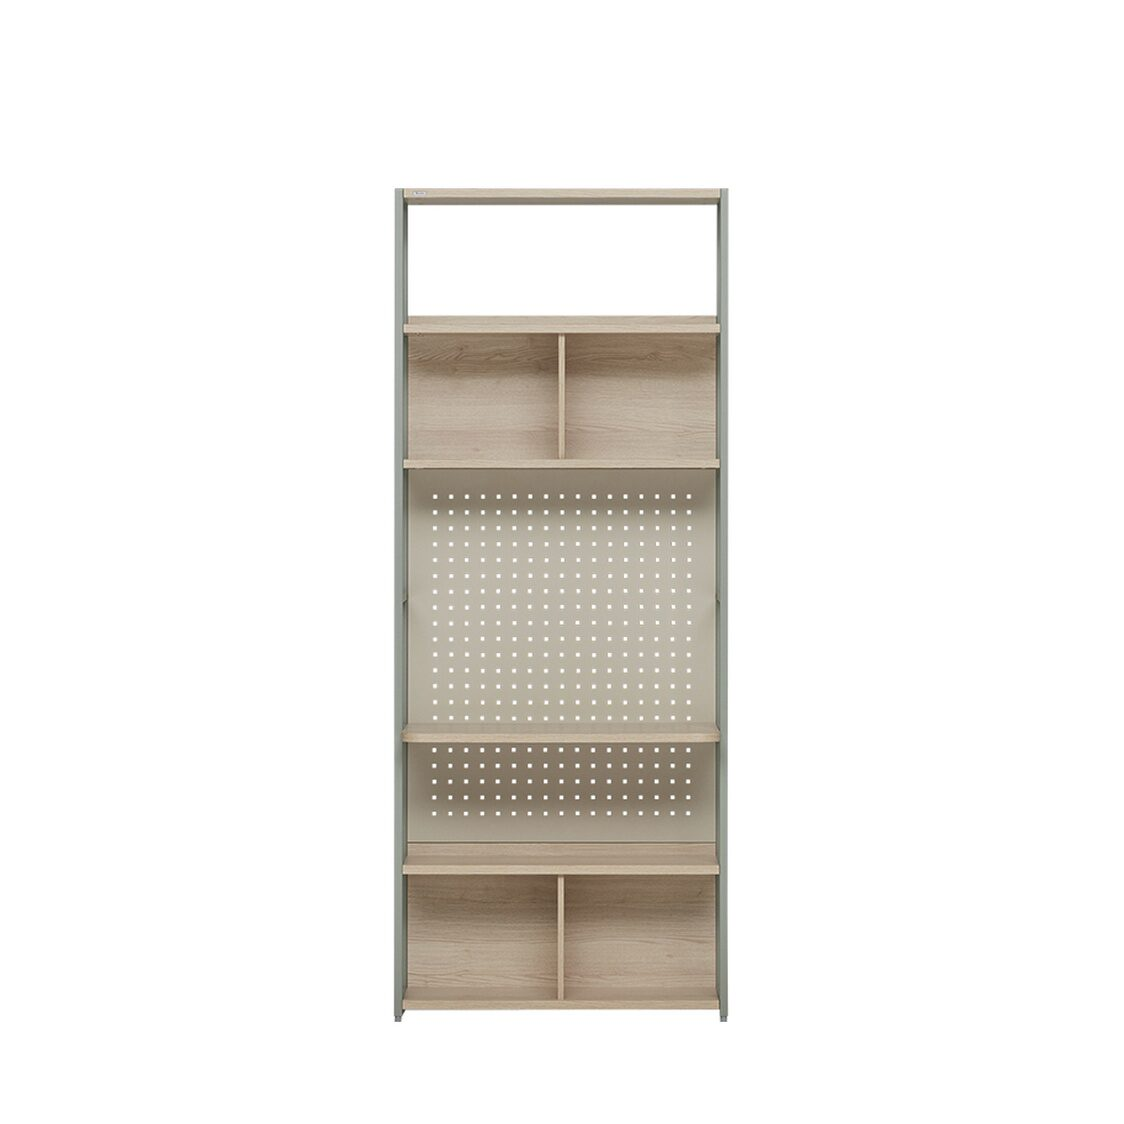 Iloom GLEN STUDIO 800W 6-story Multi Panel Storage HSPC486-NCCGG